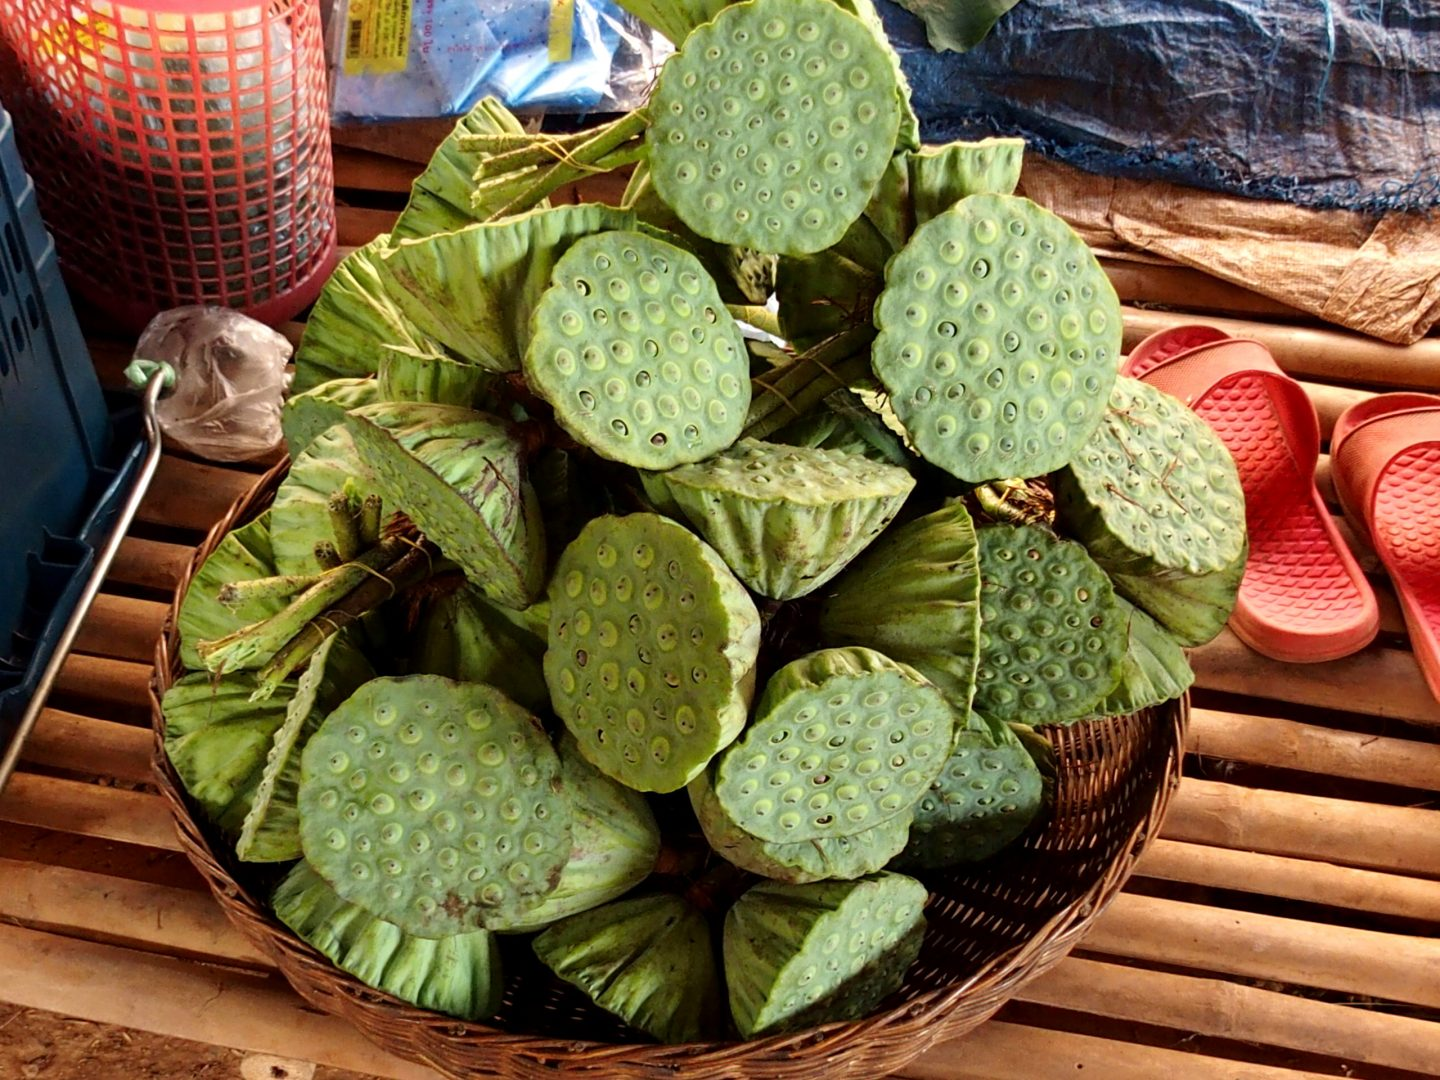 Fruits du lotus marché lac Tonle Sap Cambodge